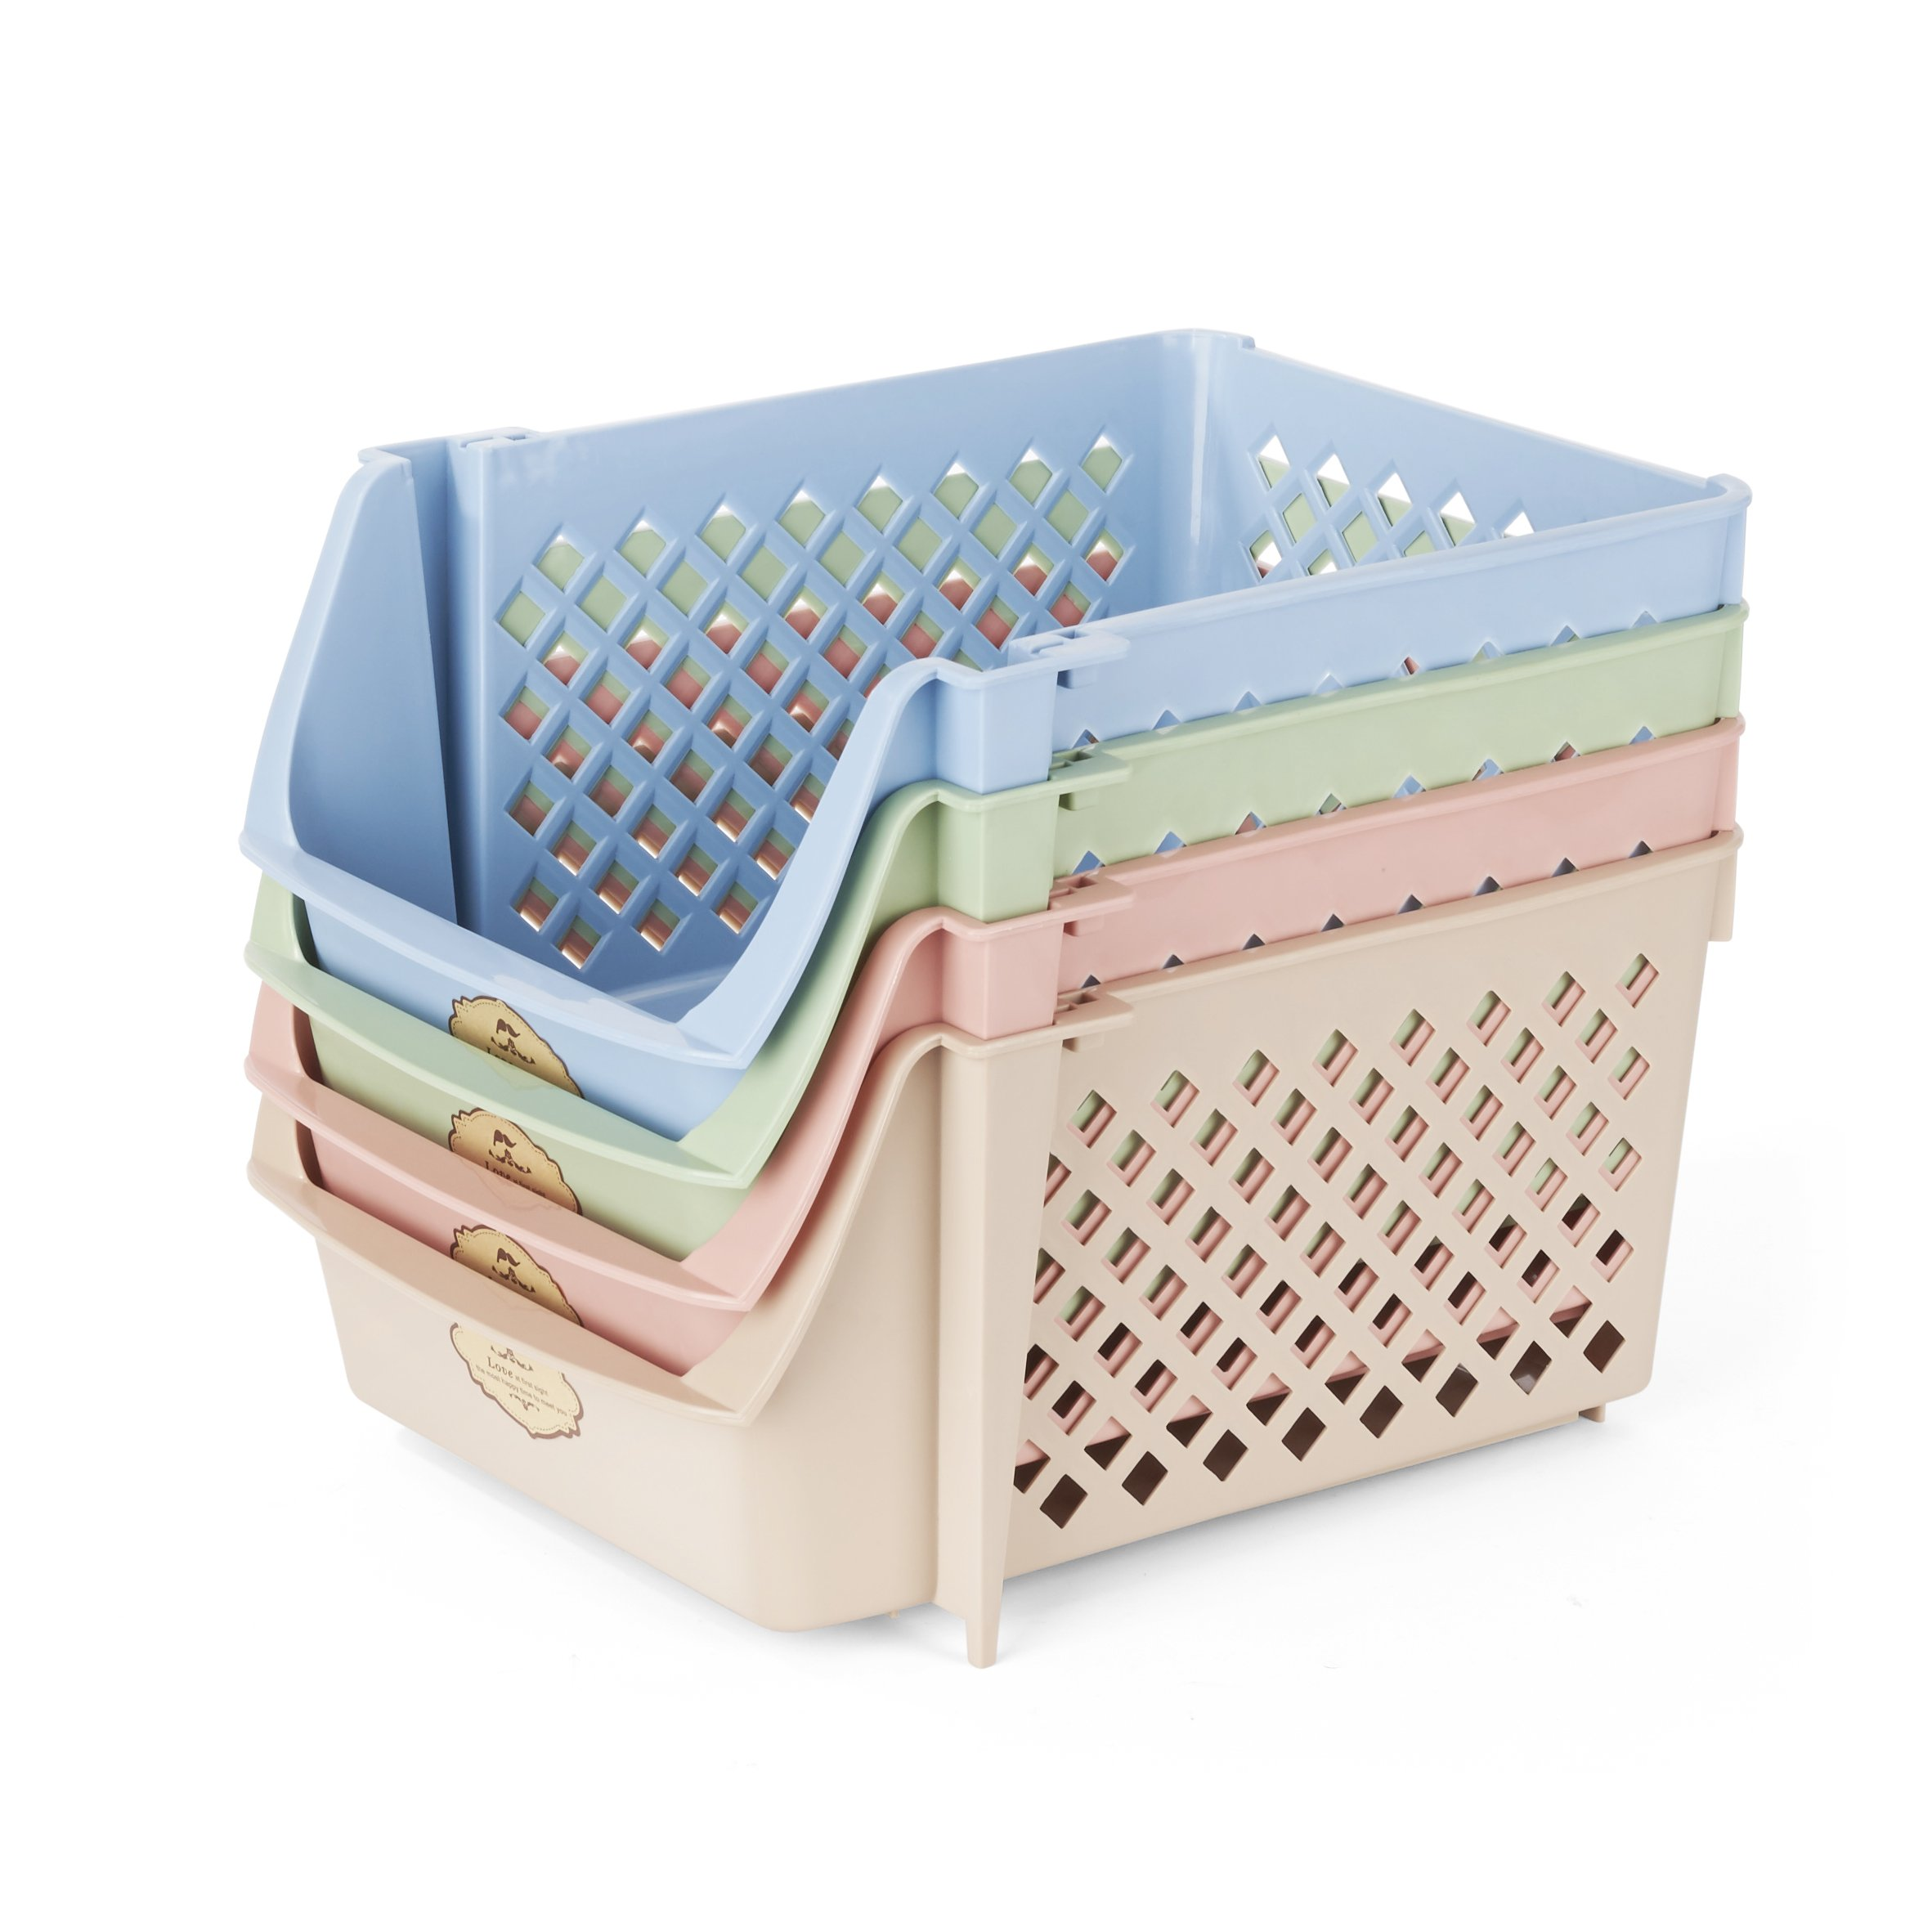 Titan Mall Storage Bins Plastic Stackable Storage Bins for Food, Fruits, Files, Mixed Color Storage Baskets, 15 X 10 X 7 Inch/bin, Blue-Green-Pink-Khaki, Set of 4 by Titan Mall (Image #3)